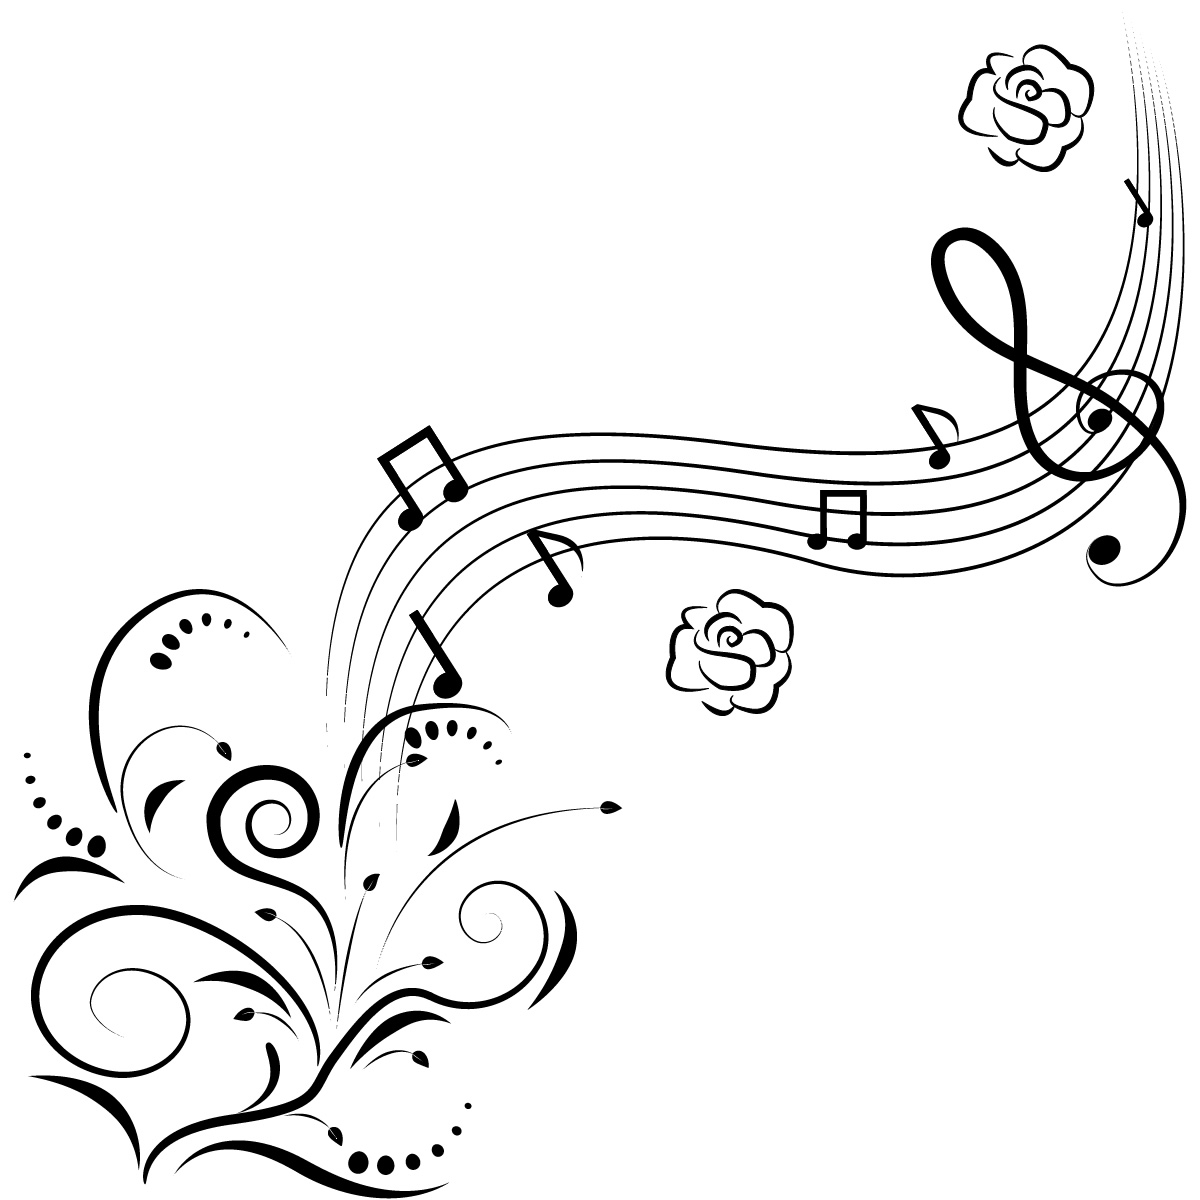 coloring music cover page free printable music note coloring pages for kids page music cover coloring